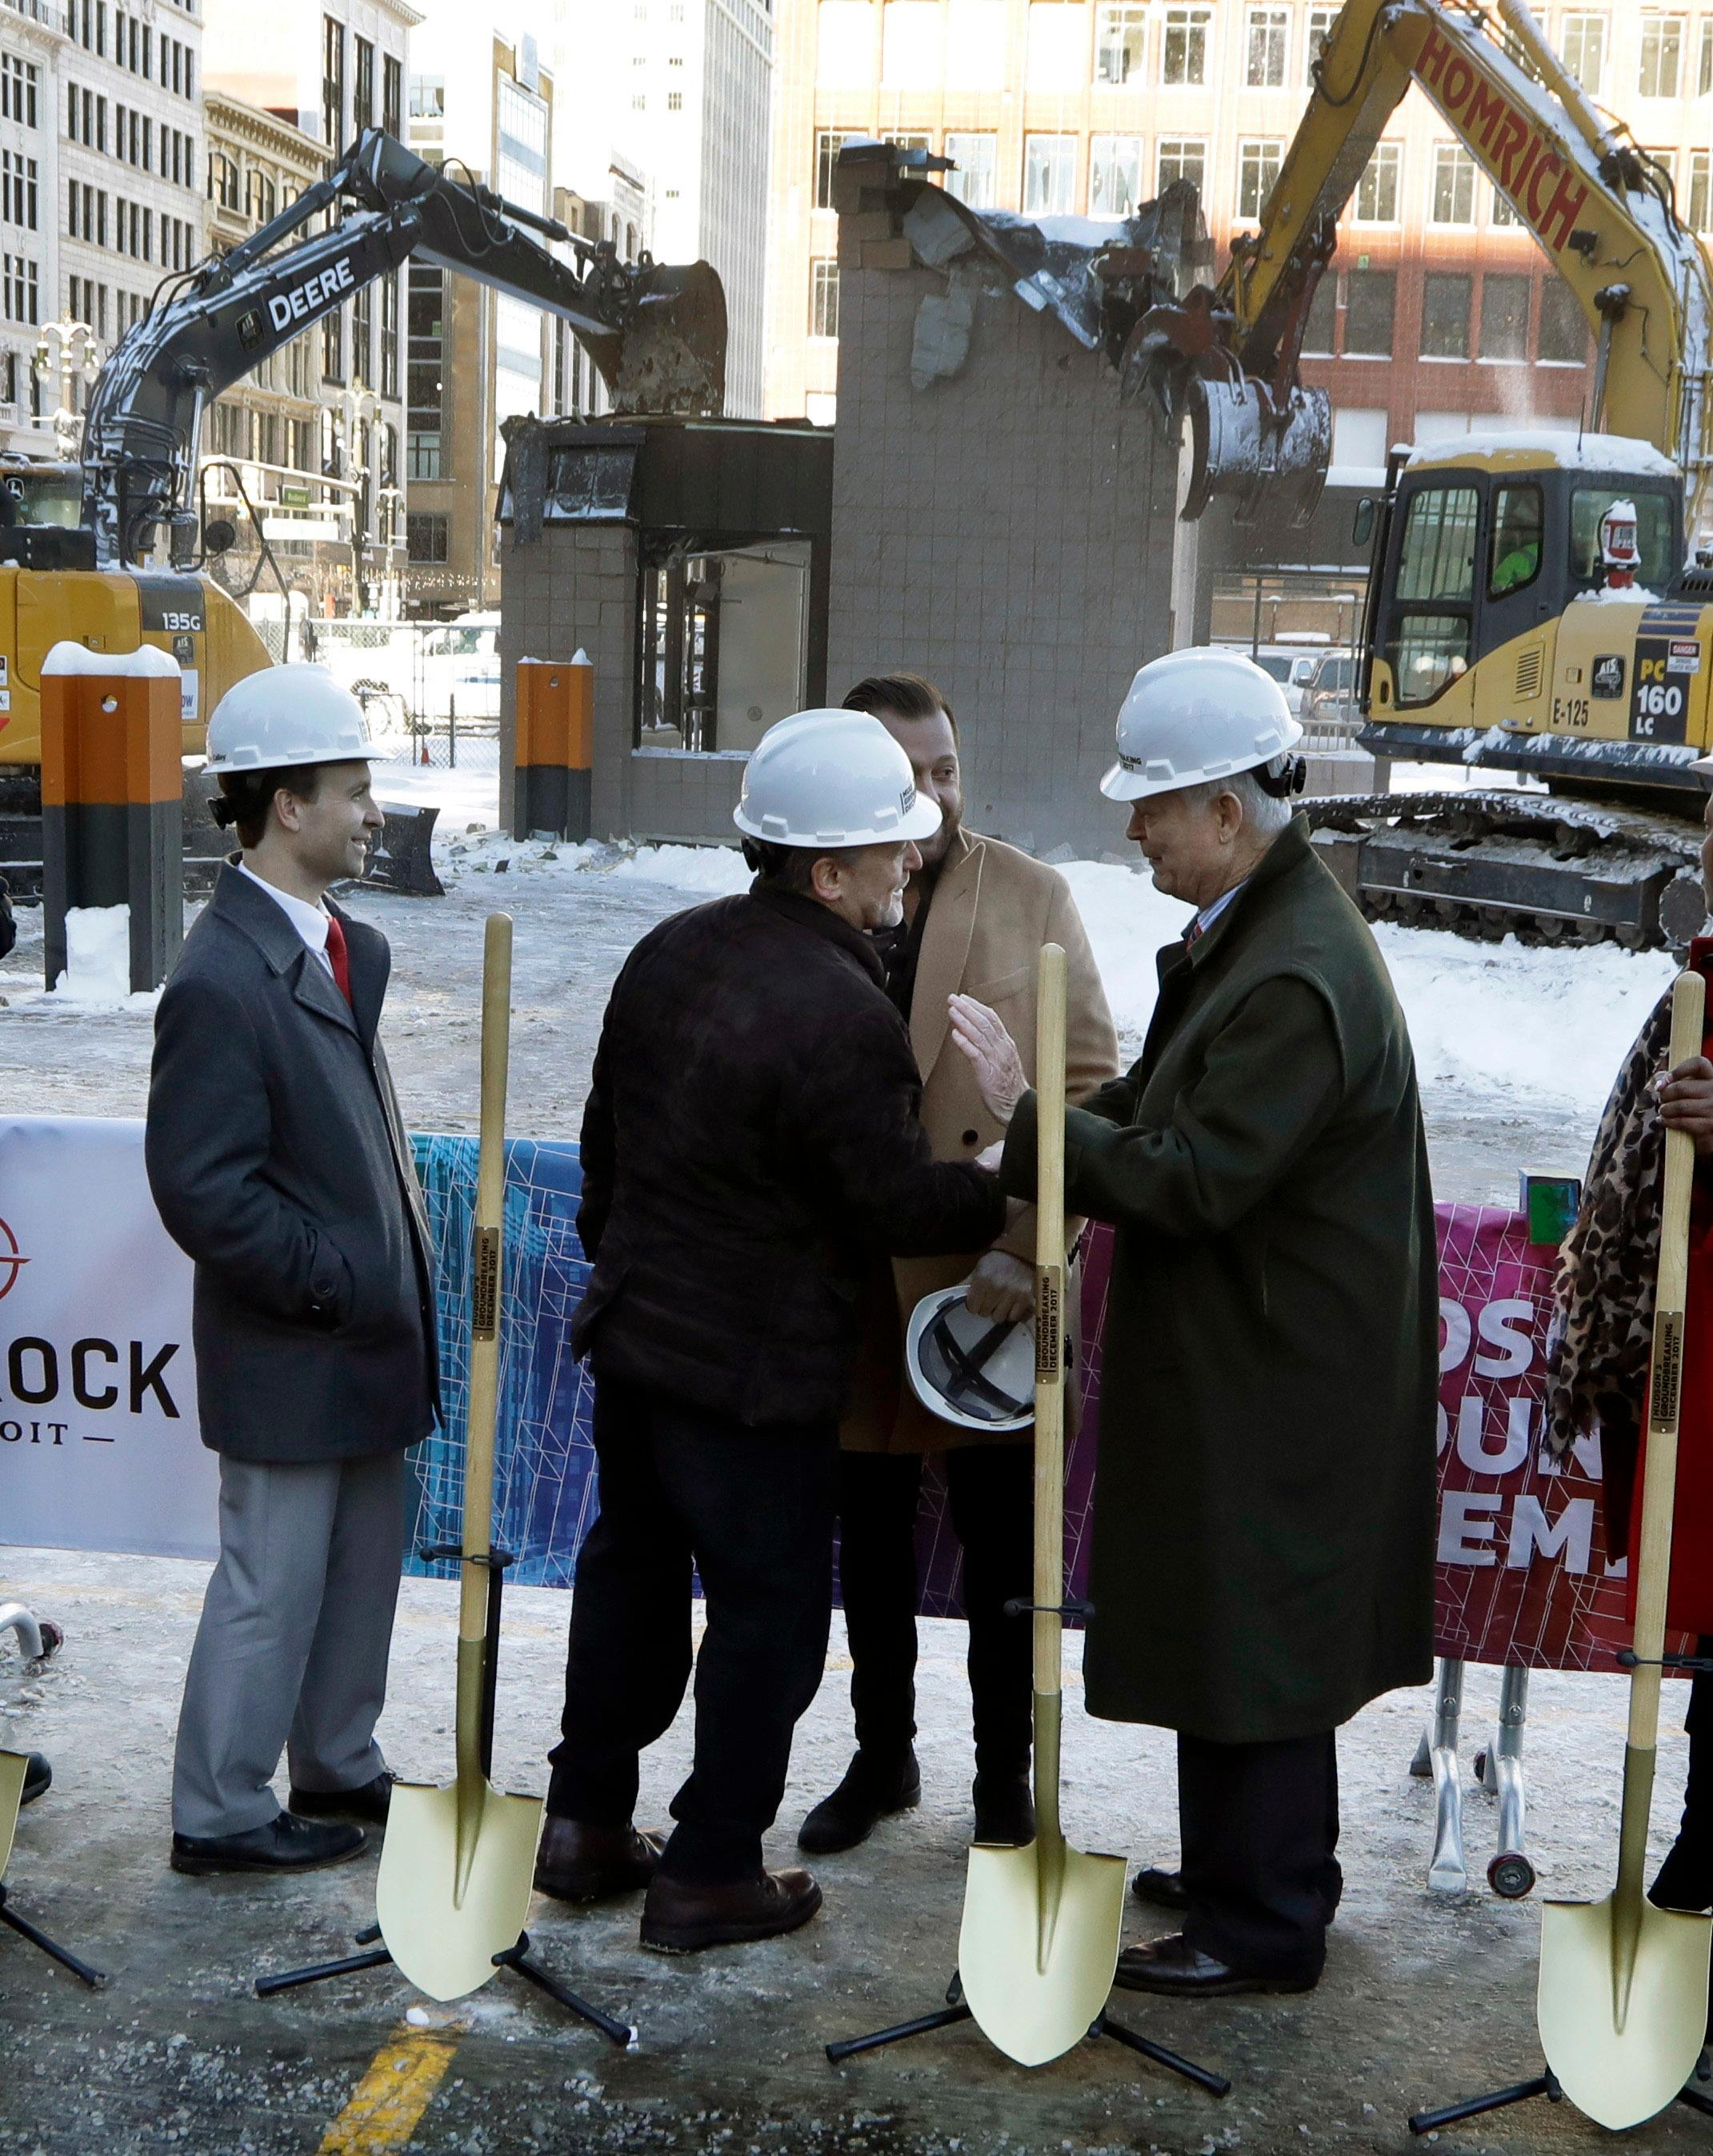 Quicken Loans founder Dan Gilbert, center, meets with Joe Hudson, former CEO of the J.L. Hudson Company at the groundbreaking site of the city's new 800-foot-tall building, Thursday, Dec. 14, 2017, in Detroit. Bedrock Detroit real estate says the $900 million two-building project will include a 58-story residential tower and 12-floor building for retail and conference space. The tower will have an 800-foot-tall (244-meter) sky deck.(AP Photo/Carlos Osorio)